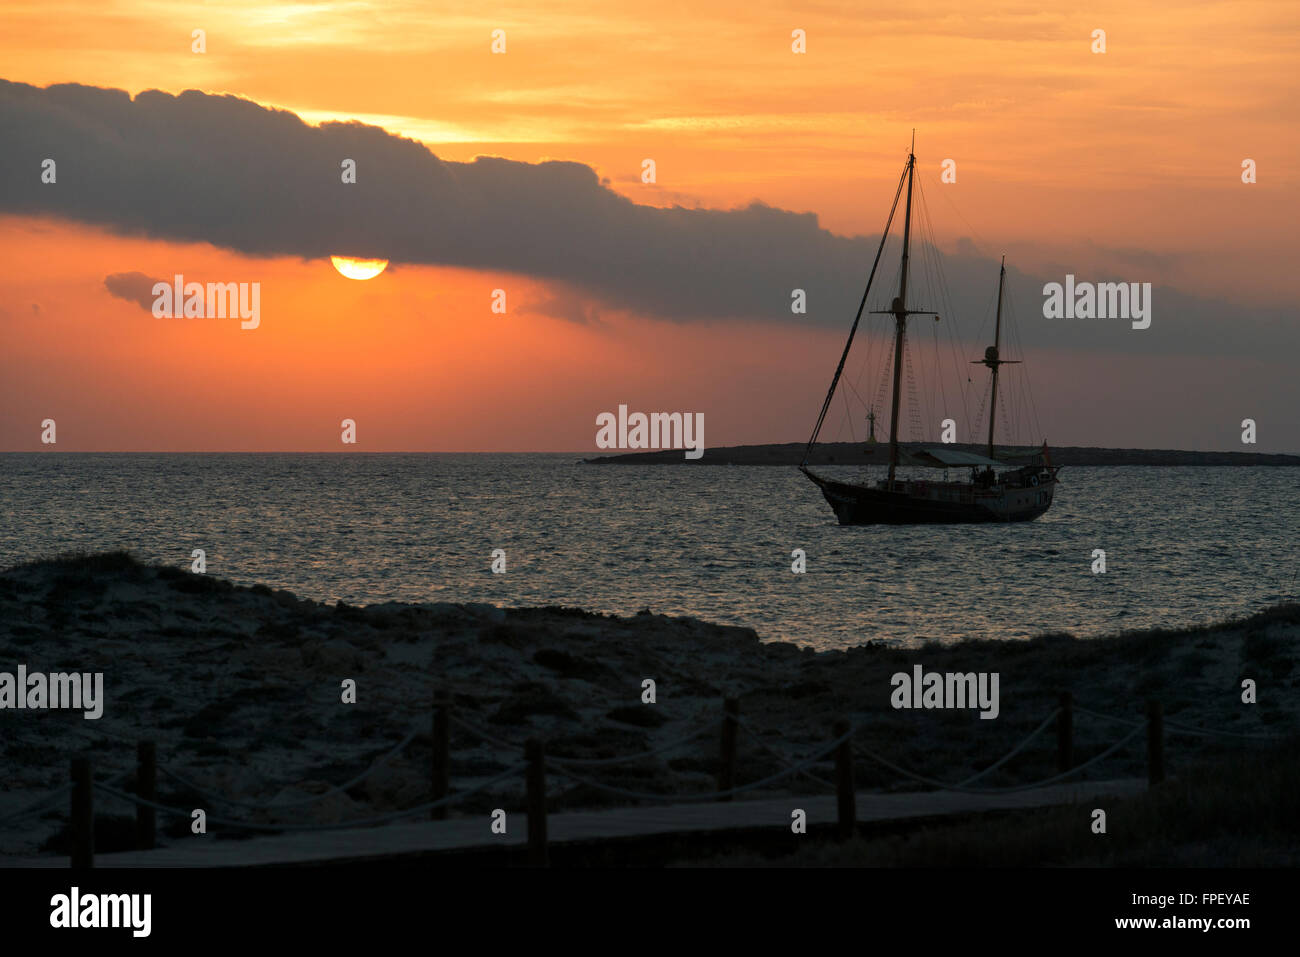 Ses Illetes Beach, Balearic Islands, Formentera, Spain. Boat and backlights in the sunset. - Stock Image